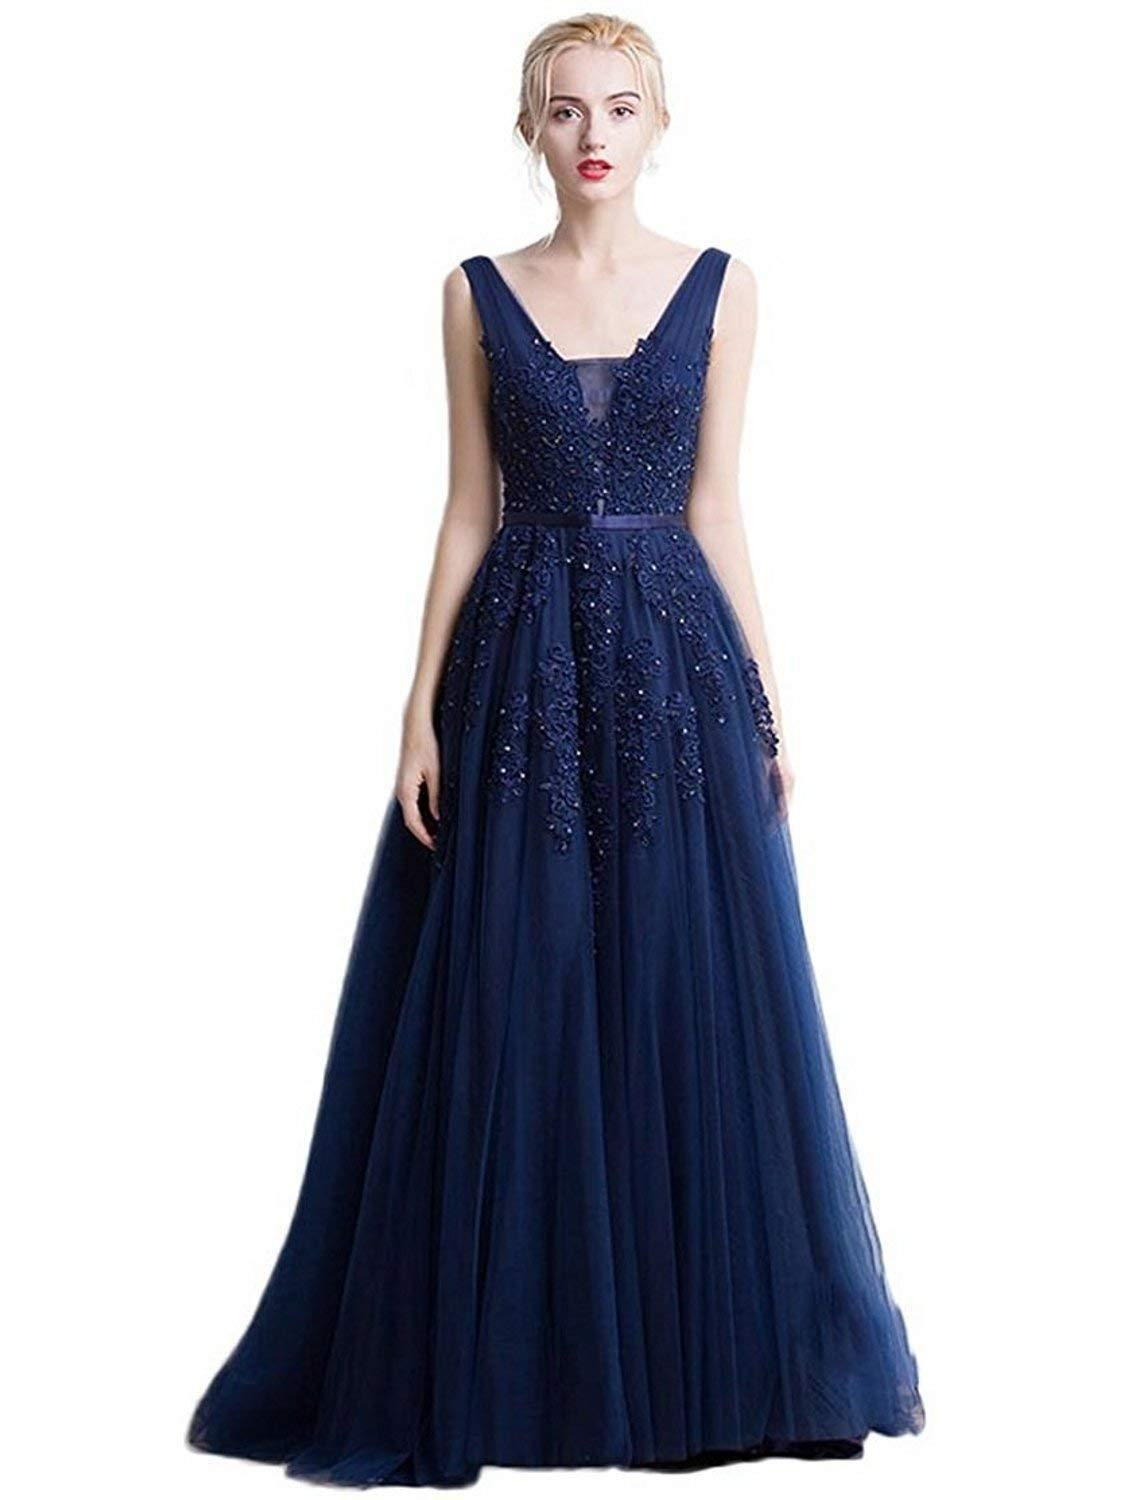 BessWedding Lace Wedding Dresses 2019 Long Ball Gown Prom Dress with Sash